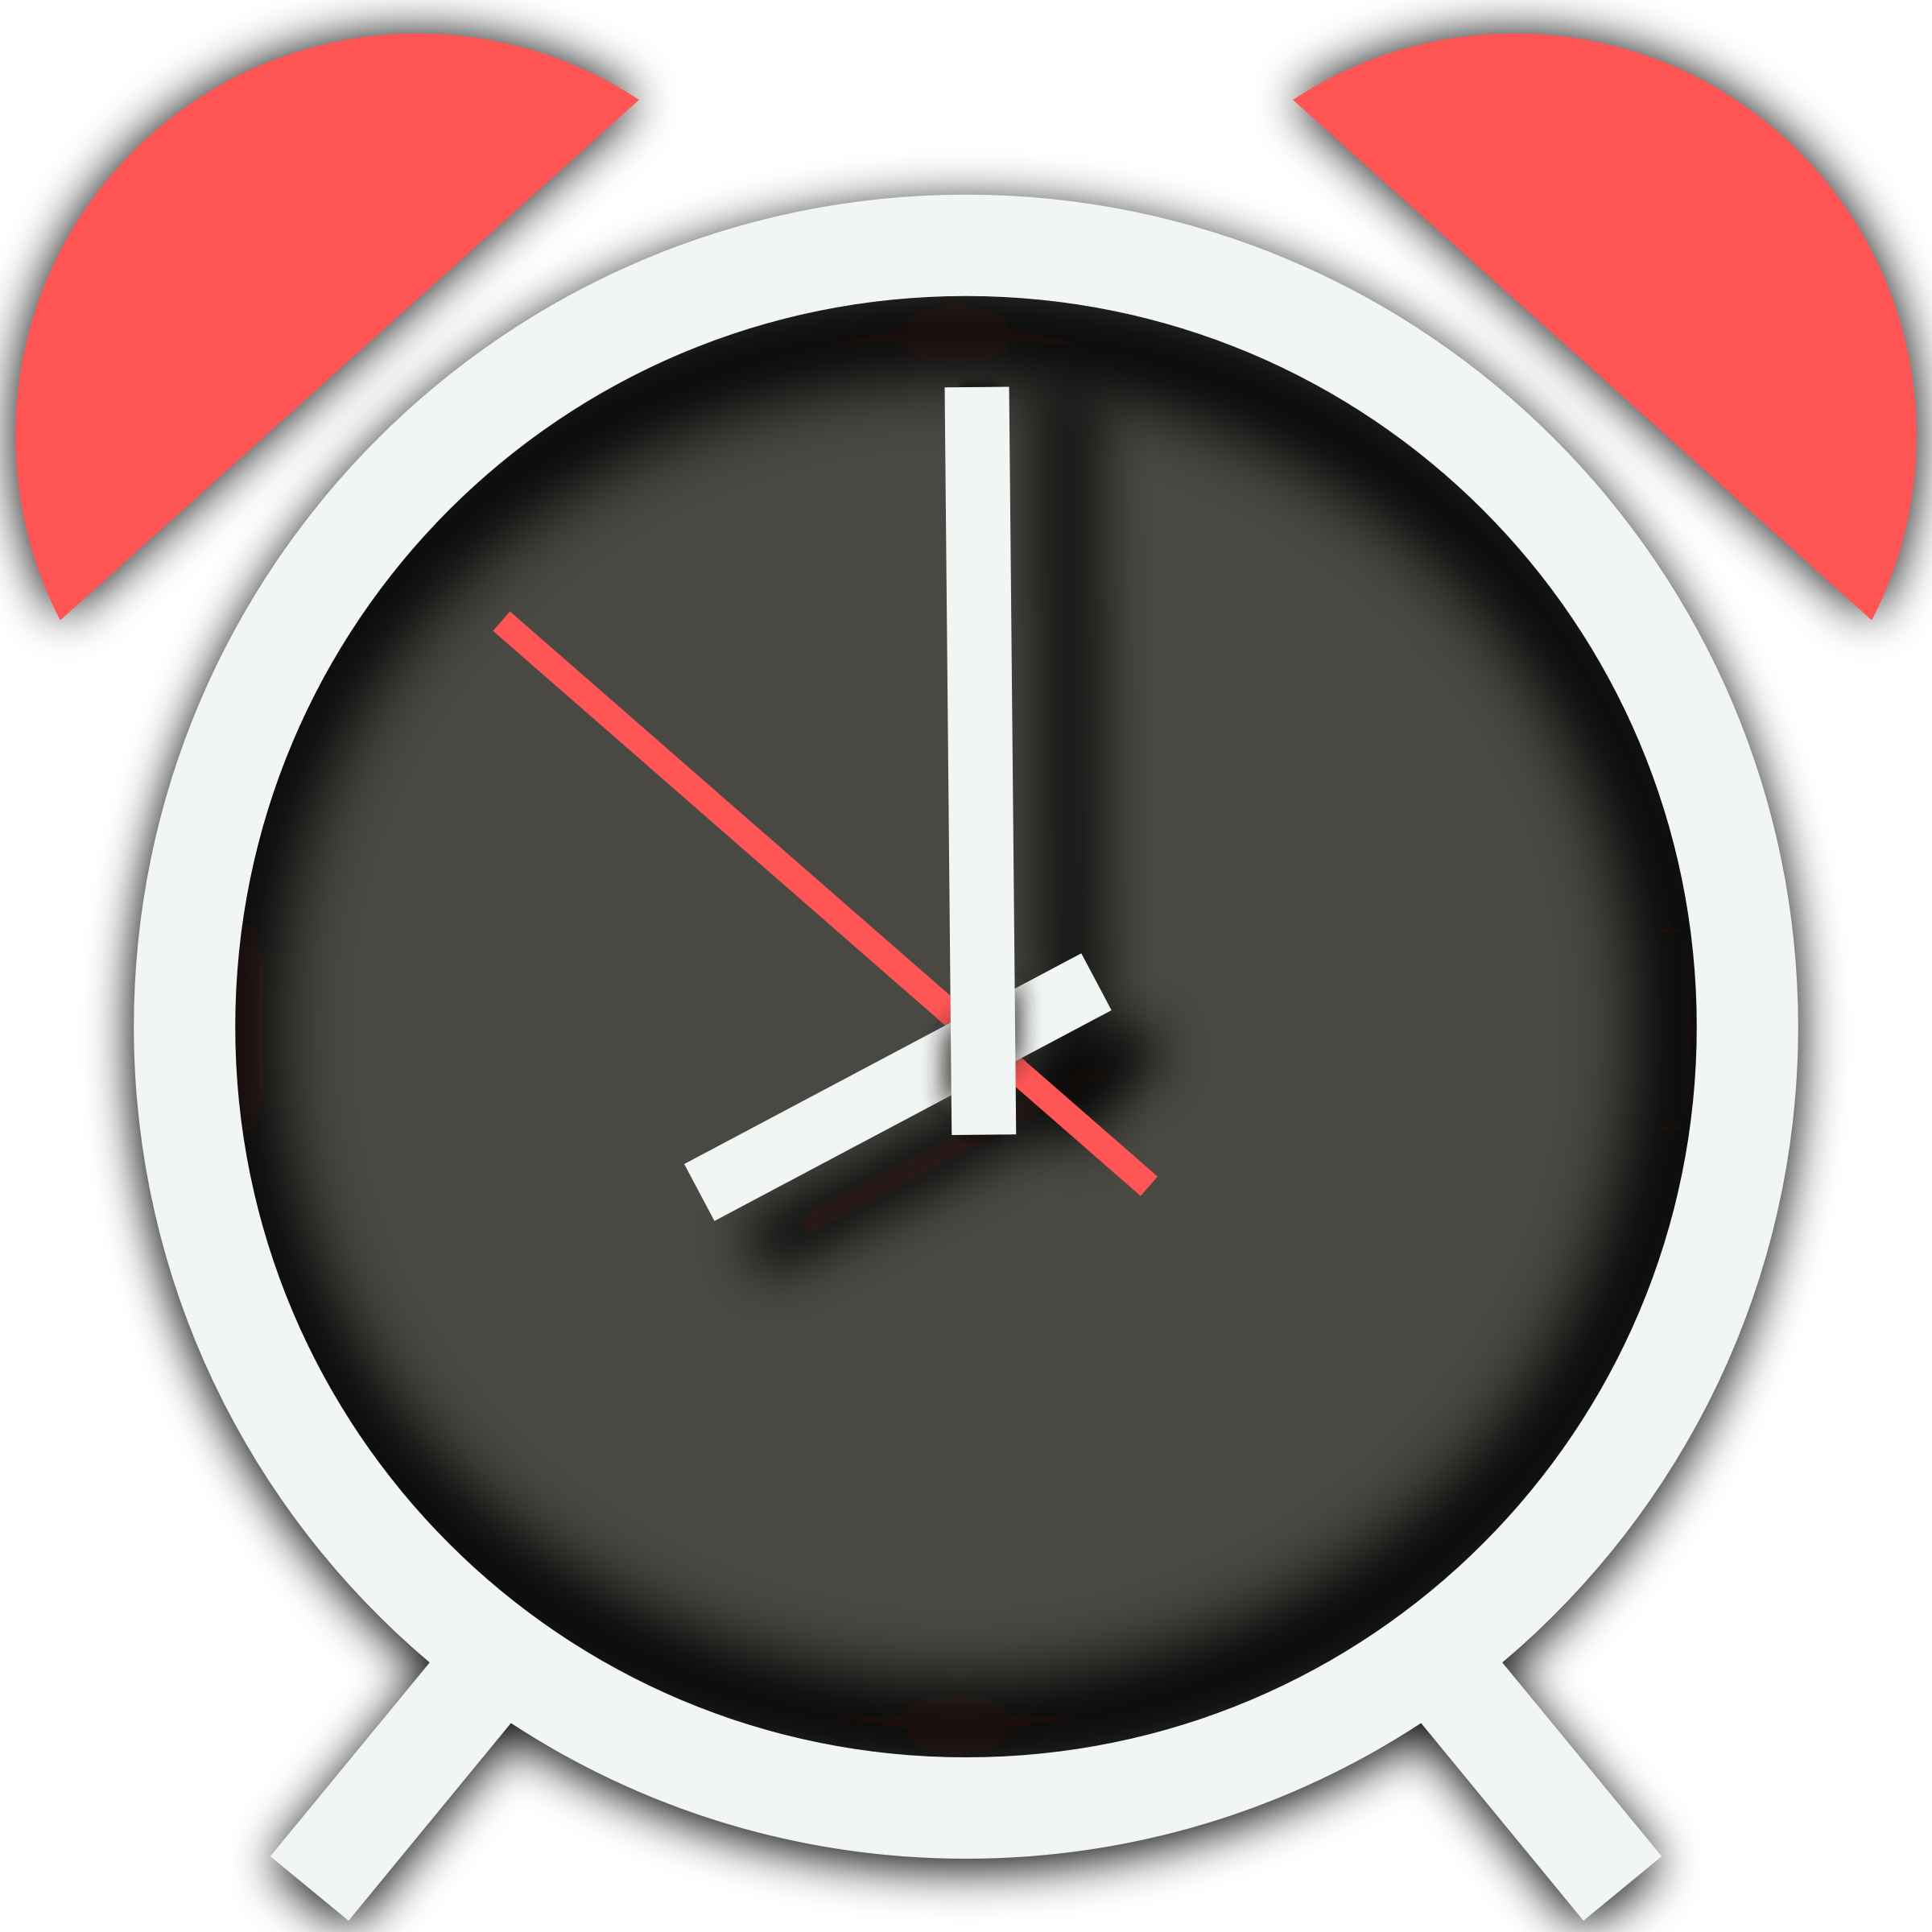 Clock icon png transparent. Alarm jelly beam icons